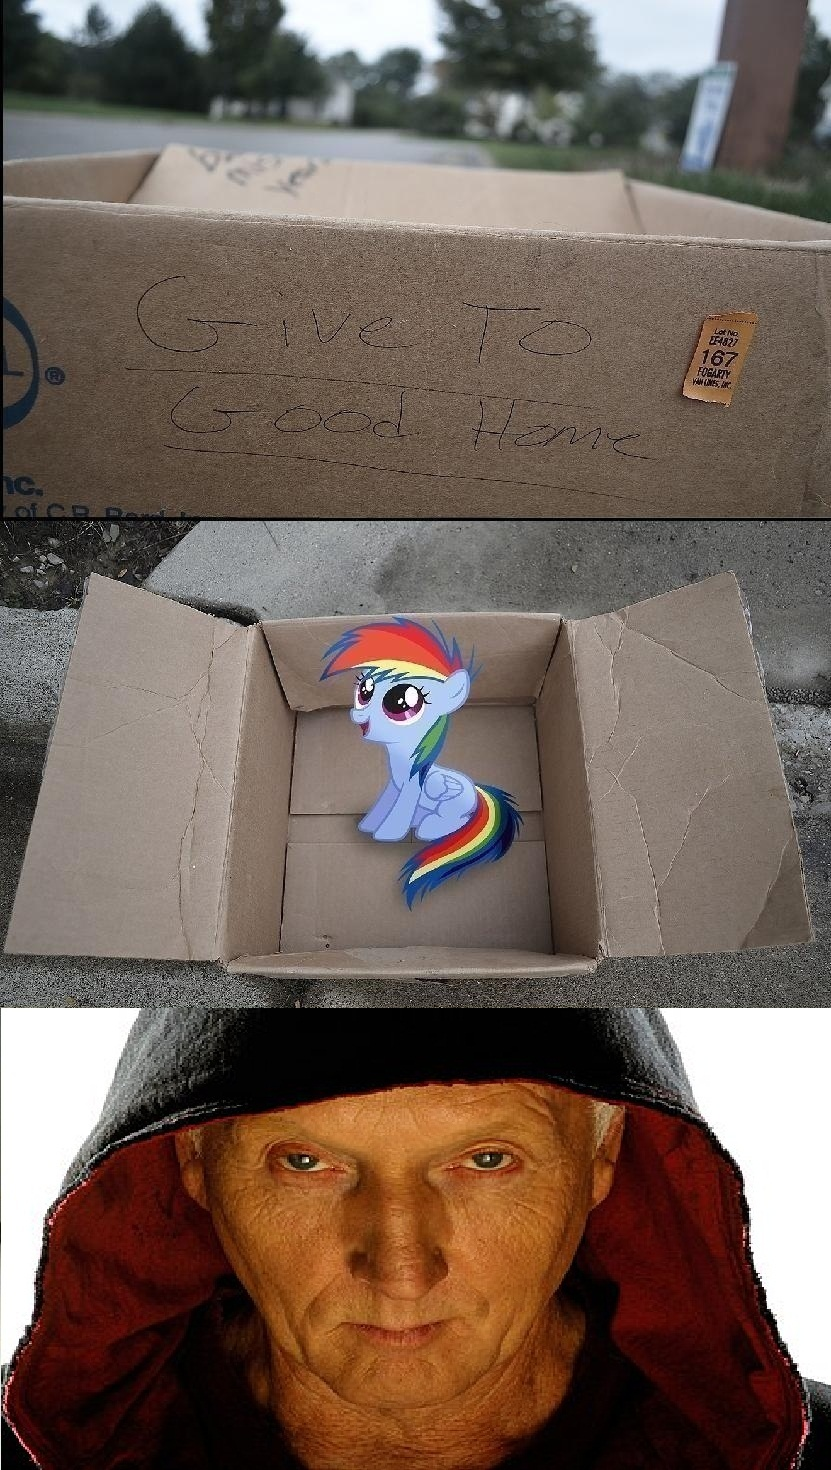 full 61873 dashie meme, evil people finding dash meme, exploitable,Jigsaw Meme